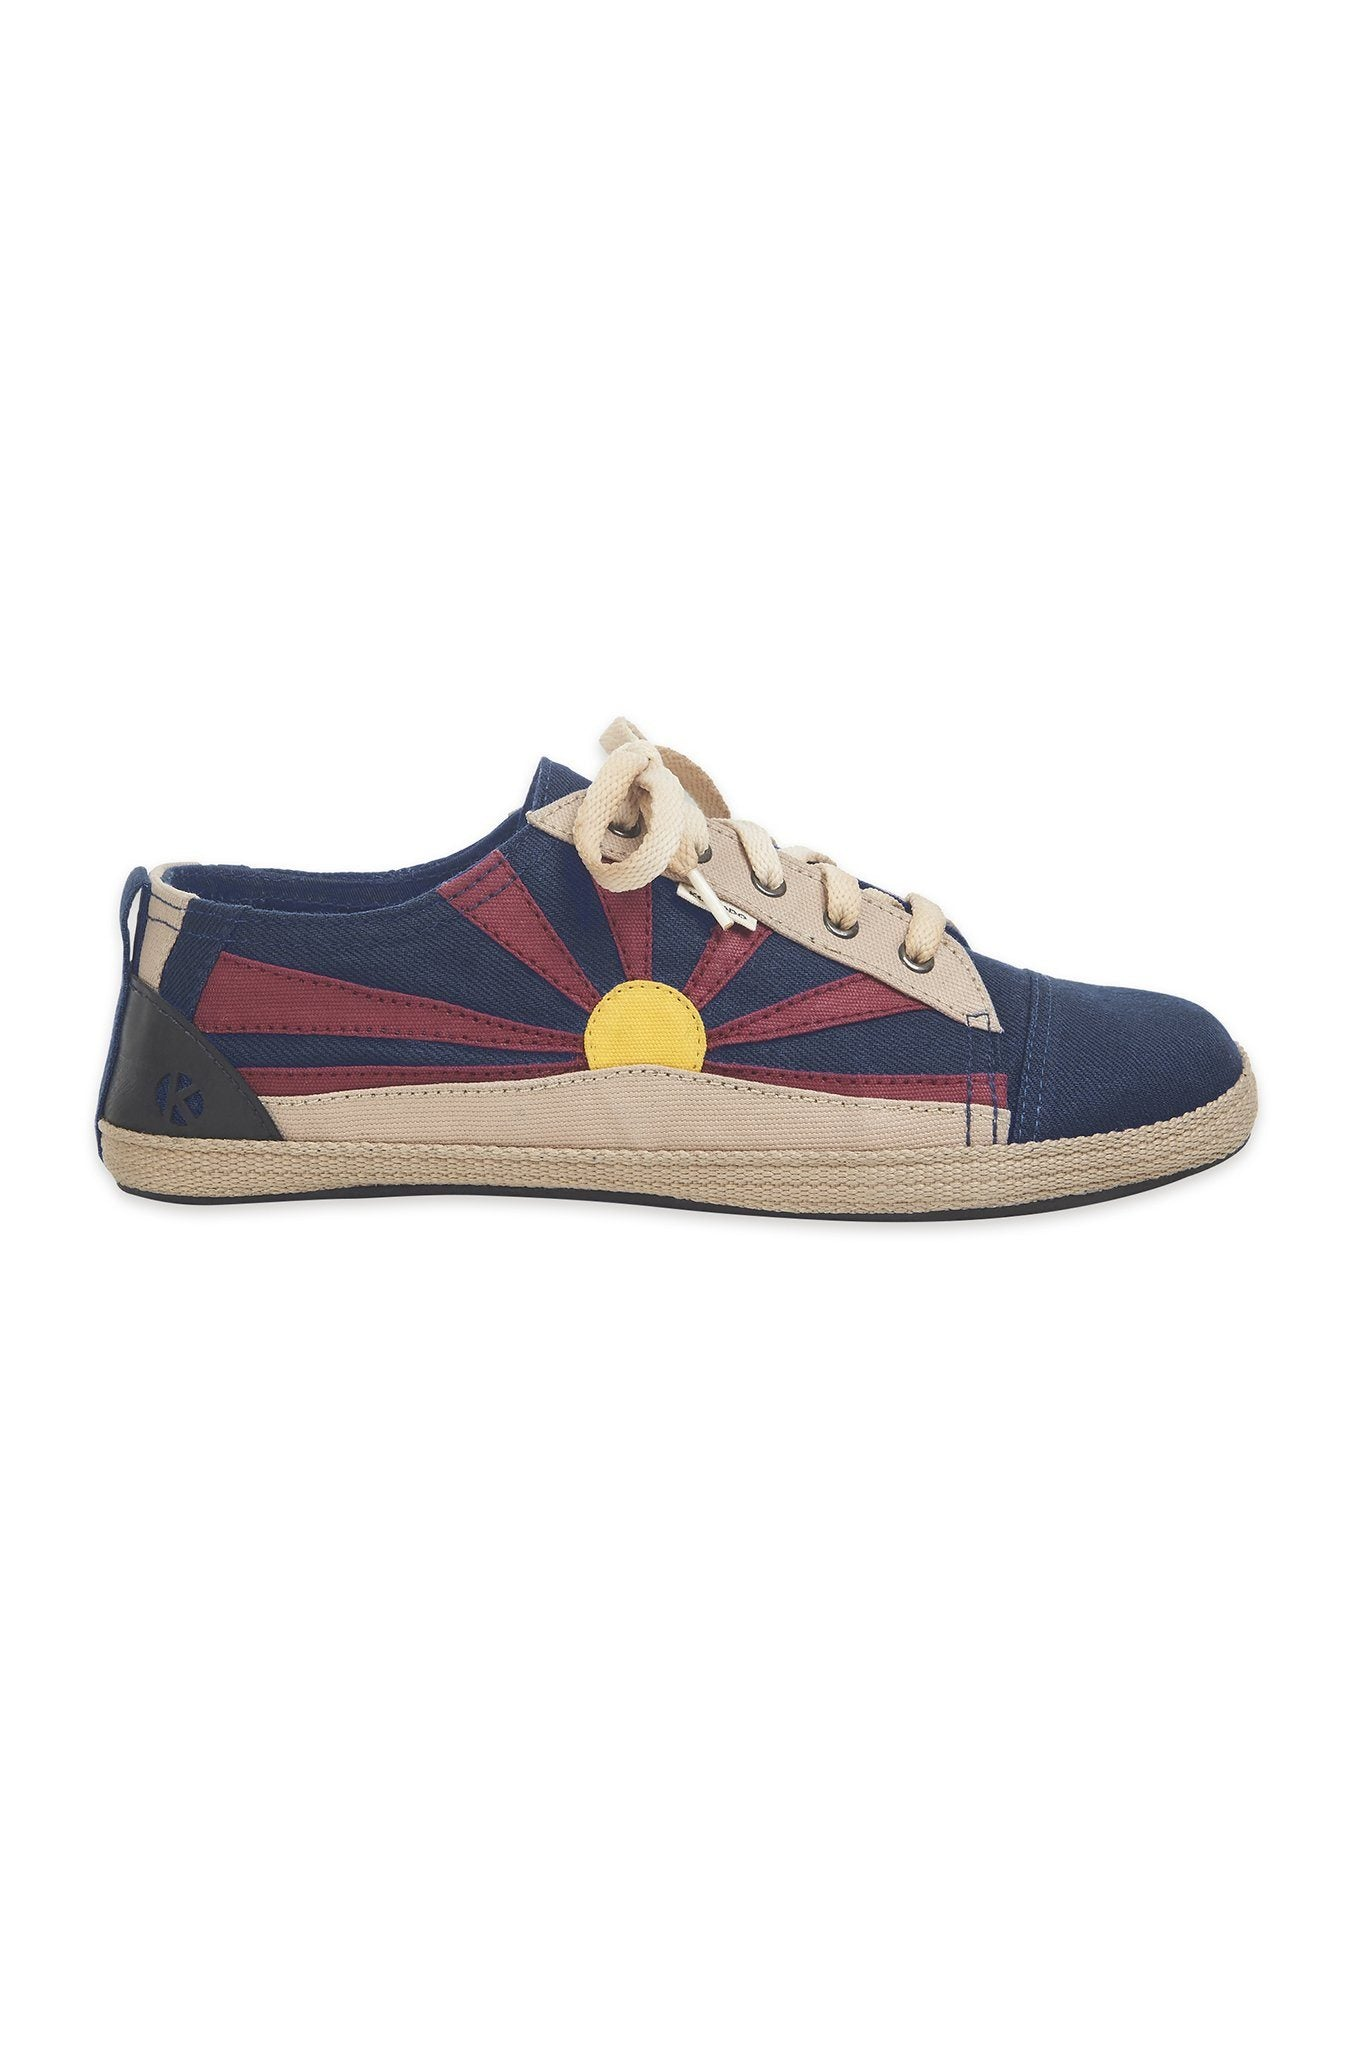 TIBET Navy Mens Shoes - Komodo Fashion